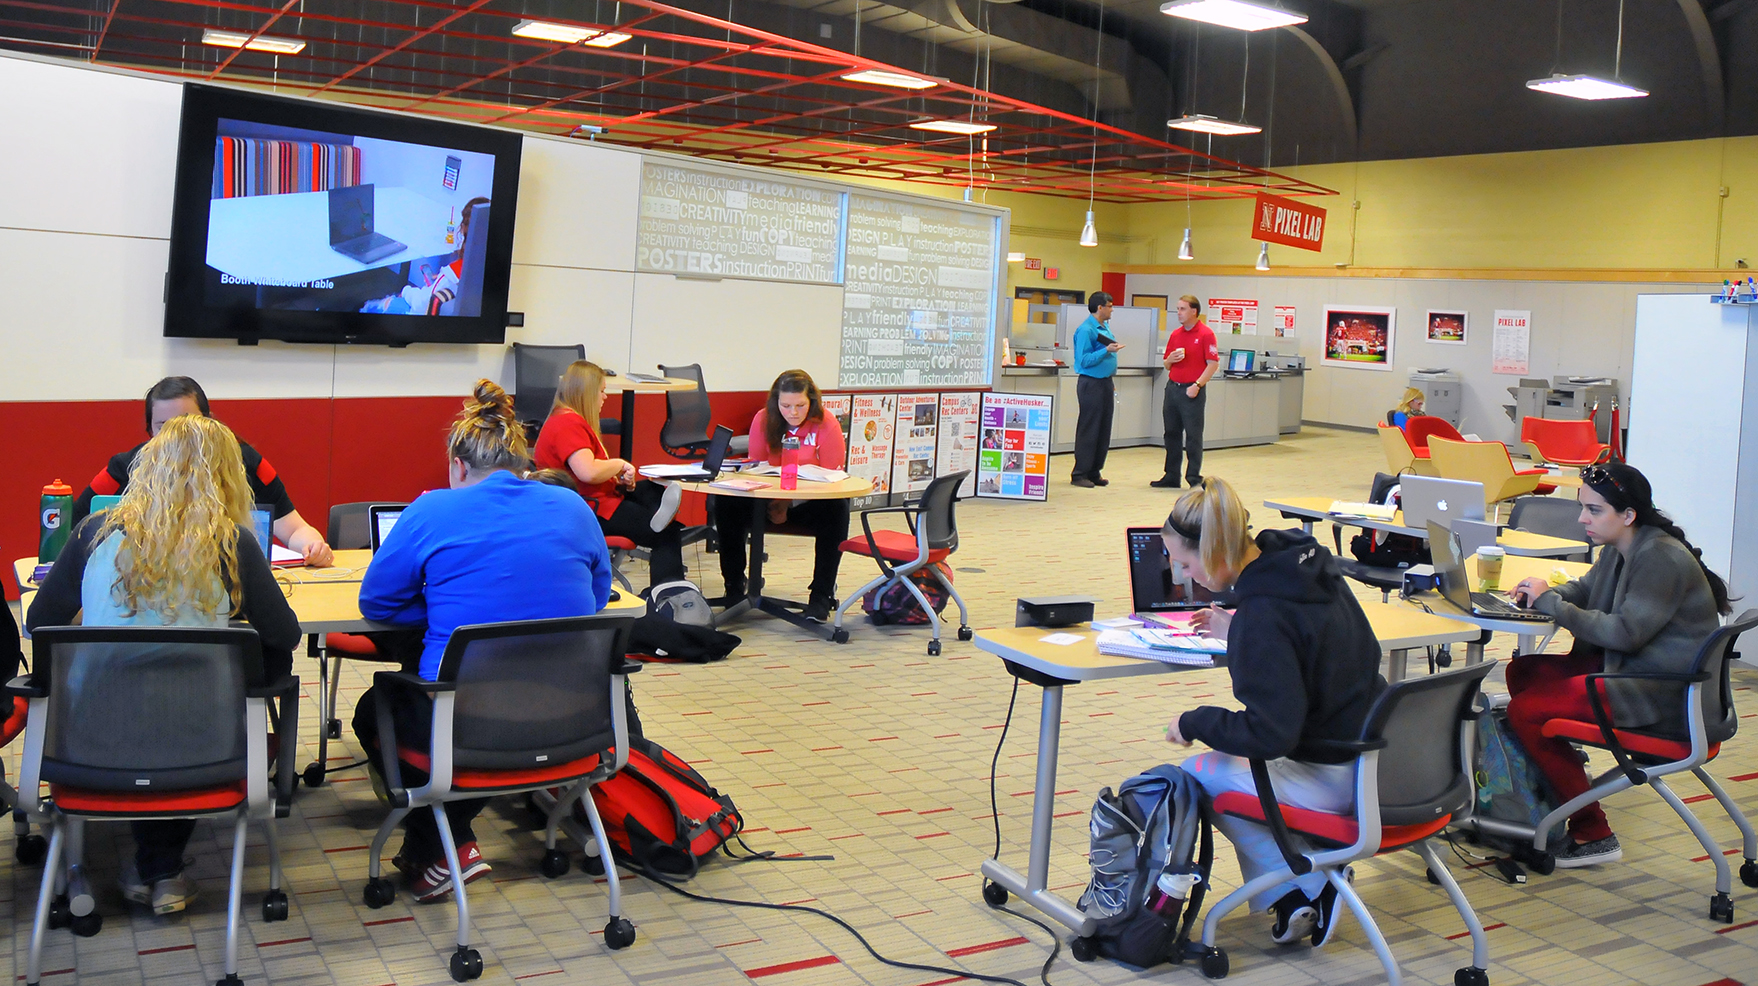 Collaborative Teaching Laboratory : Pixel lab combines collaboration space creative services